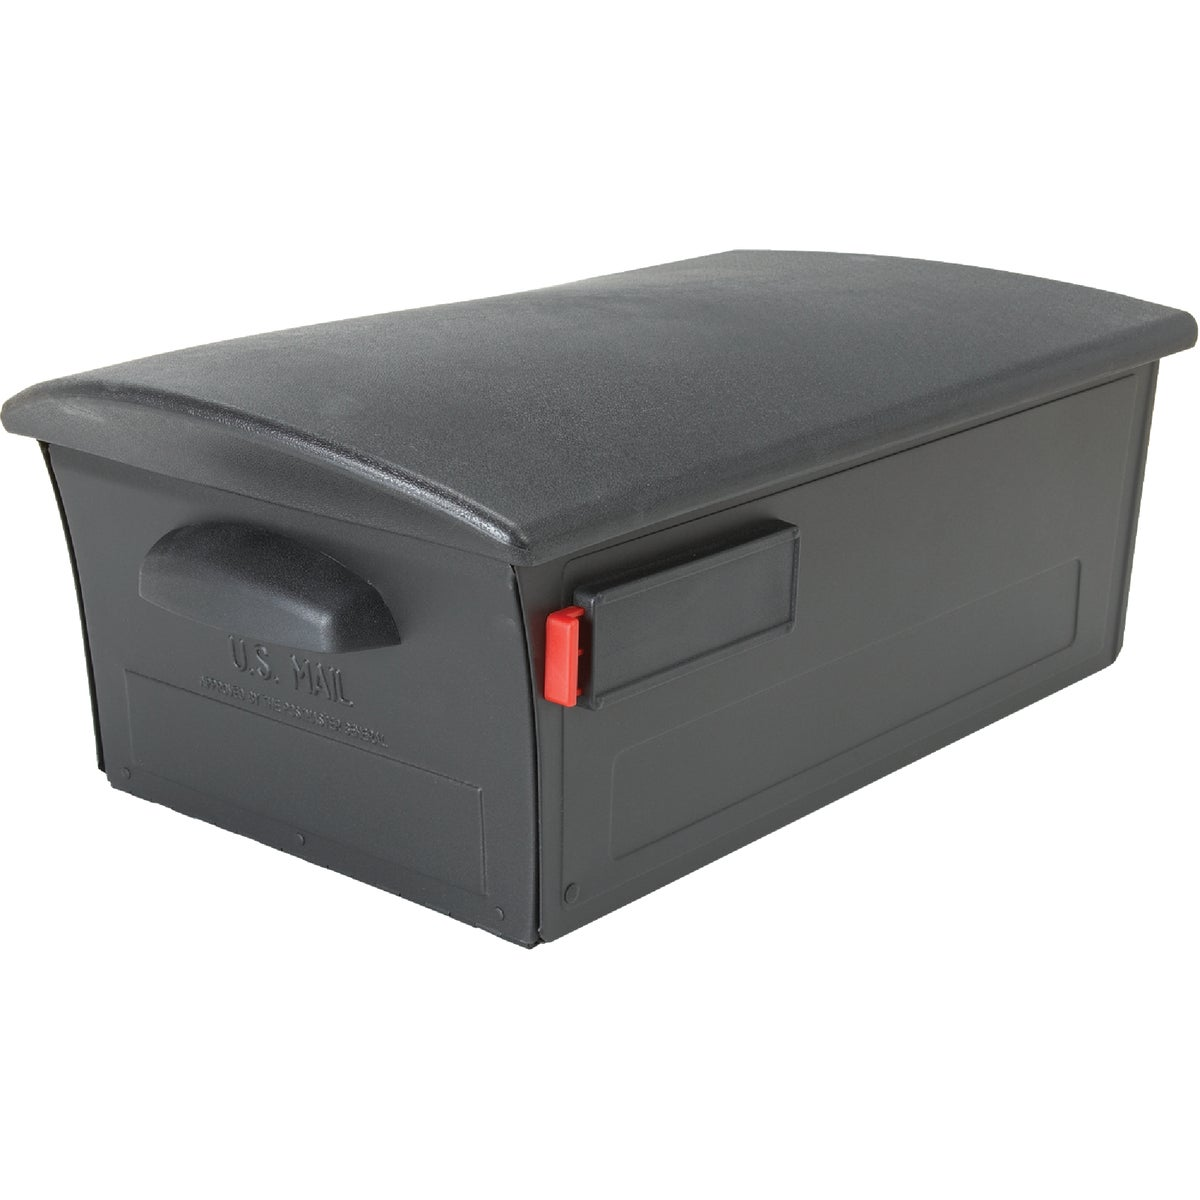 LOCKABLE RURAL MAILBOX - RSKB000 by Solar Group